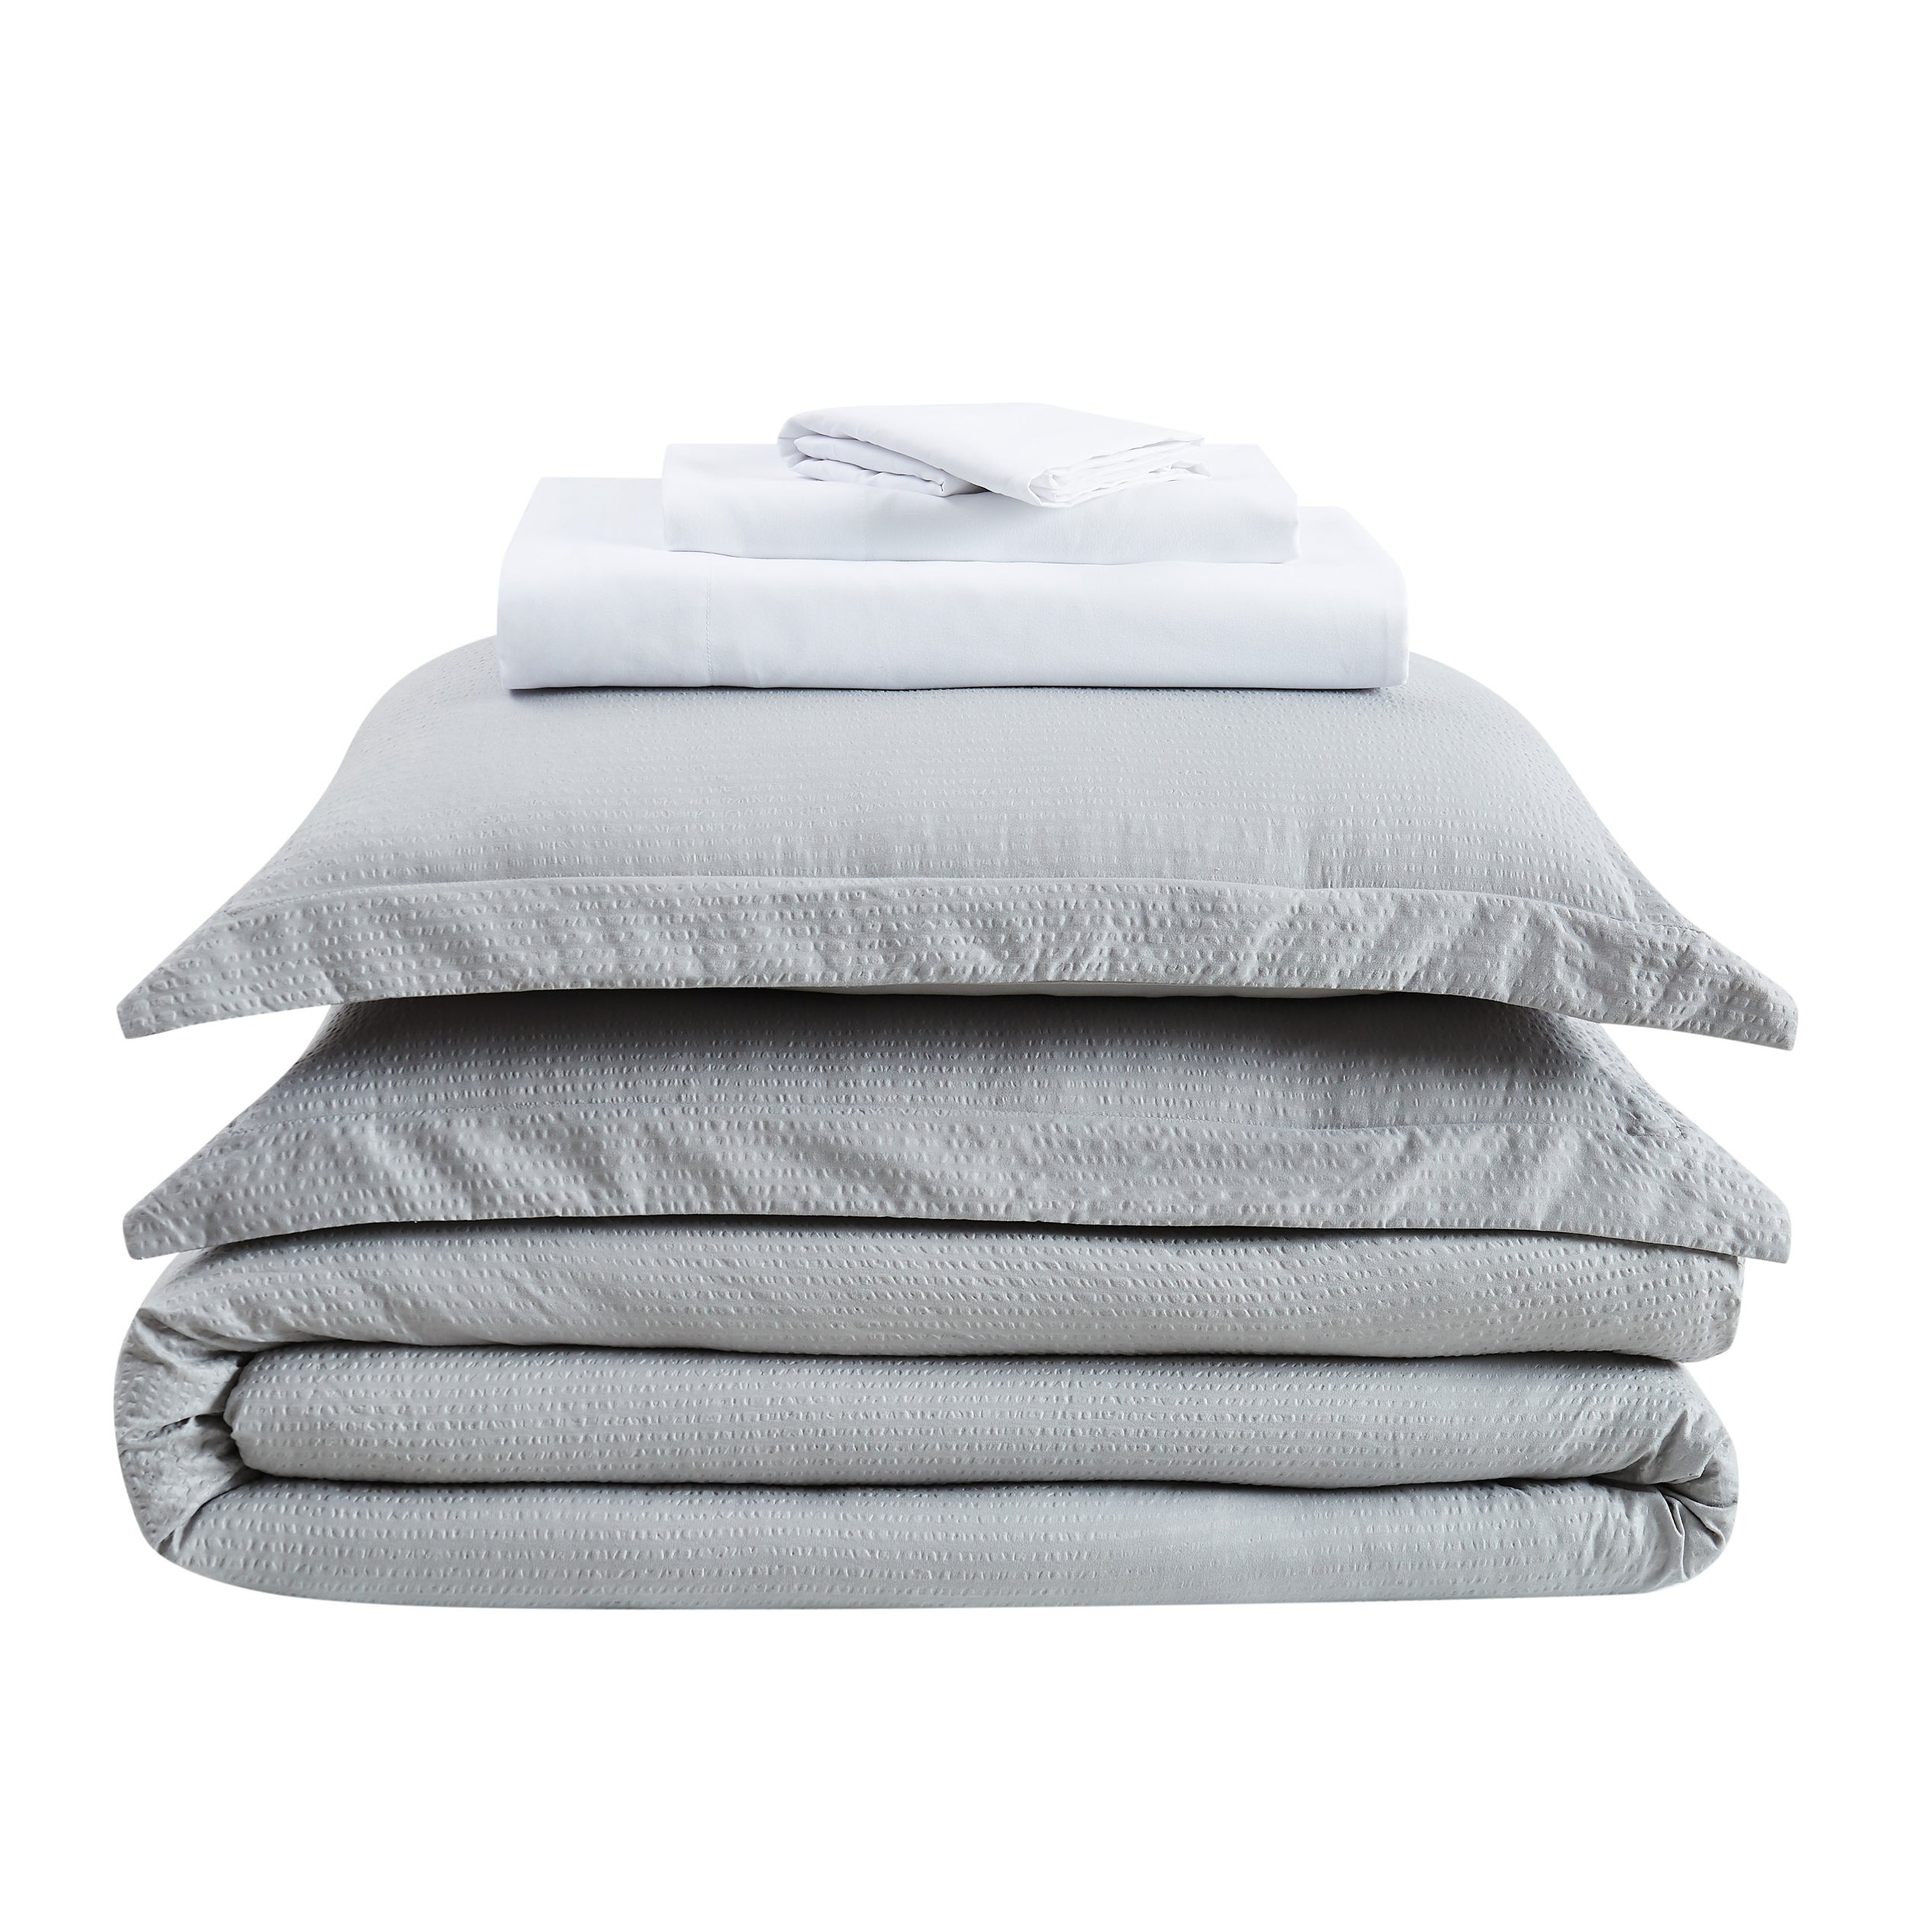 Truly Calm Antimicrobial Seersucker 7 Piece Bed In A Bag Overstock 31859496